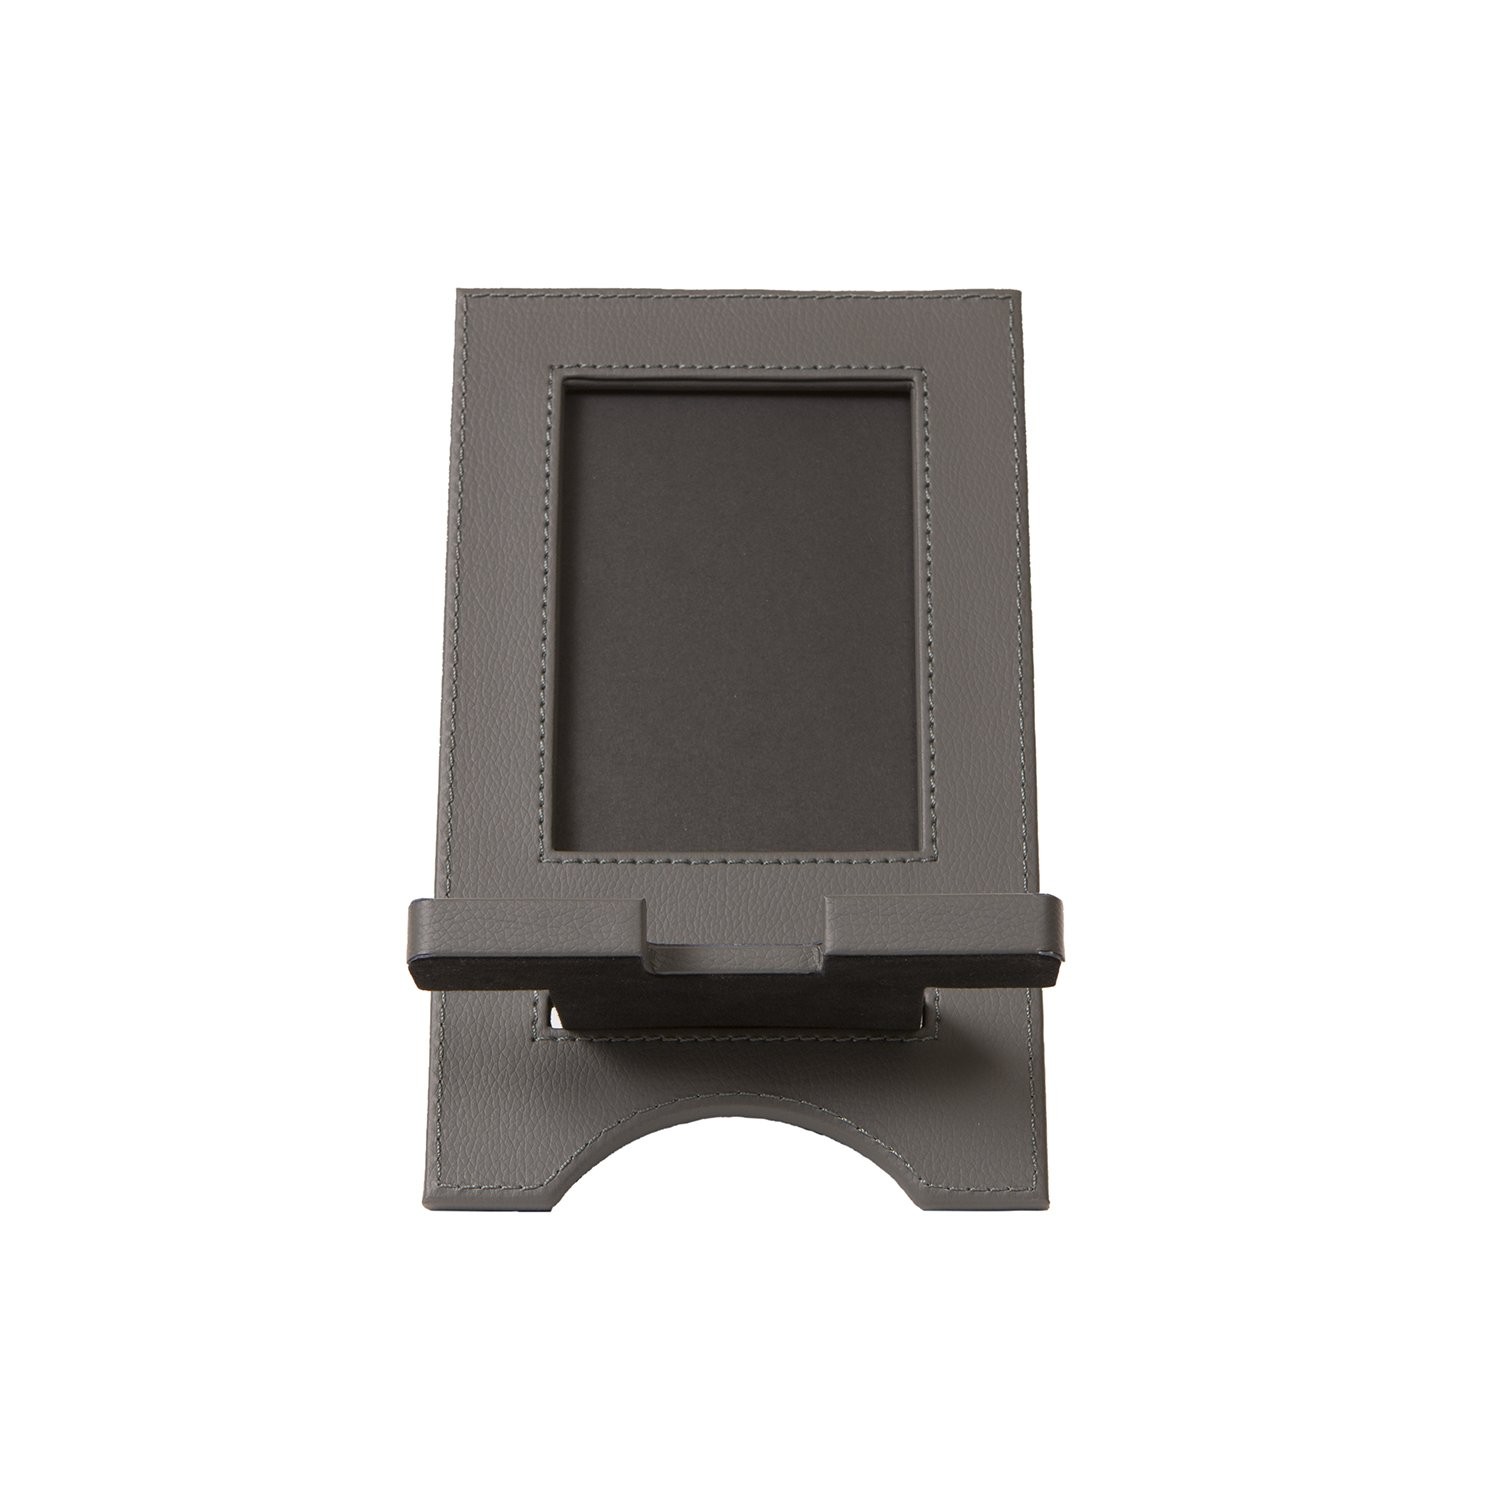 CRG Iota Tablet Lap Pillow Stand, Tranquility (ITR-14096)